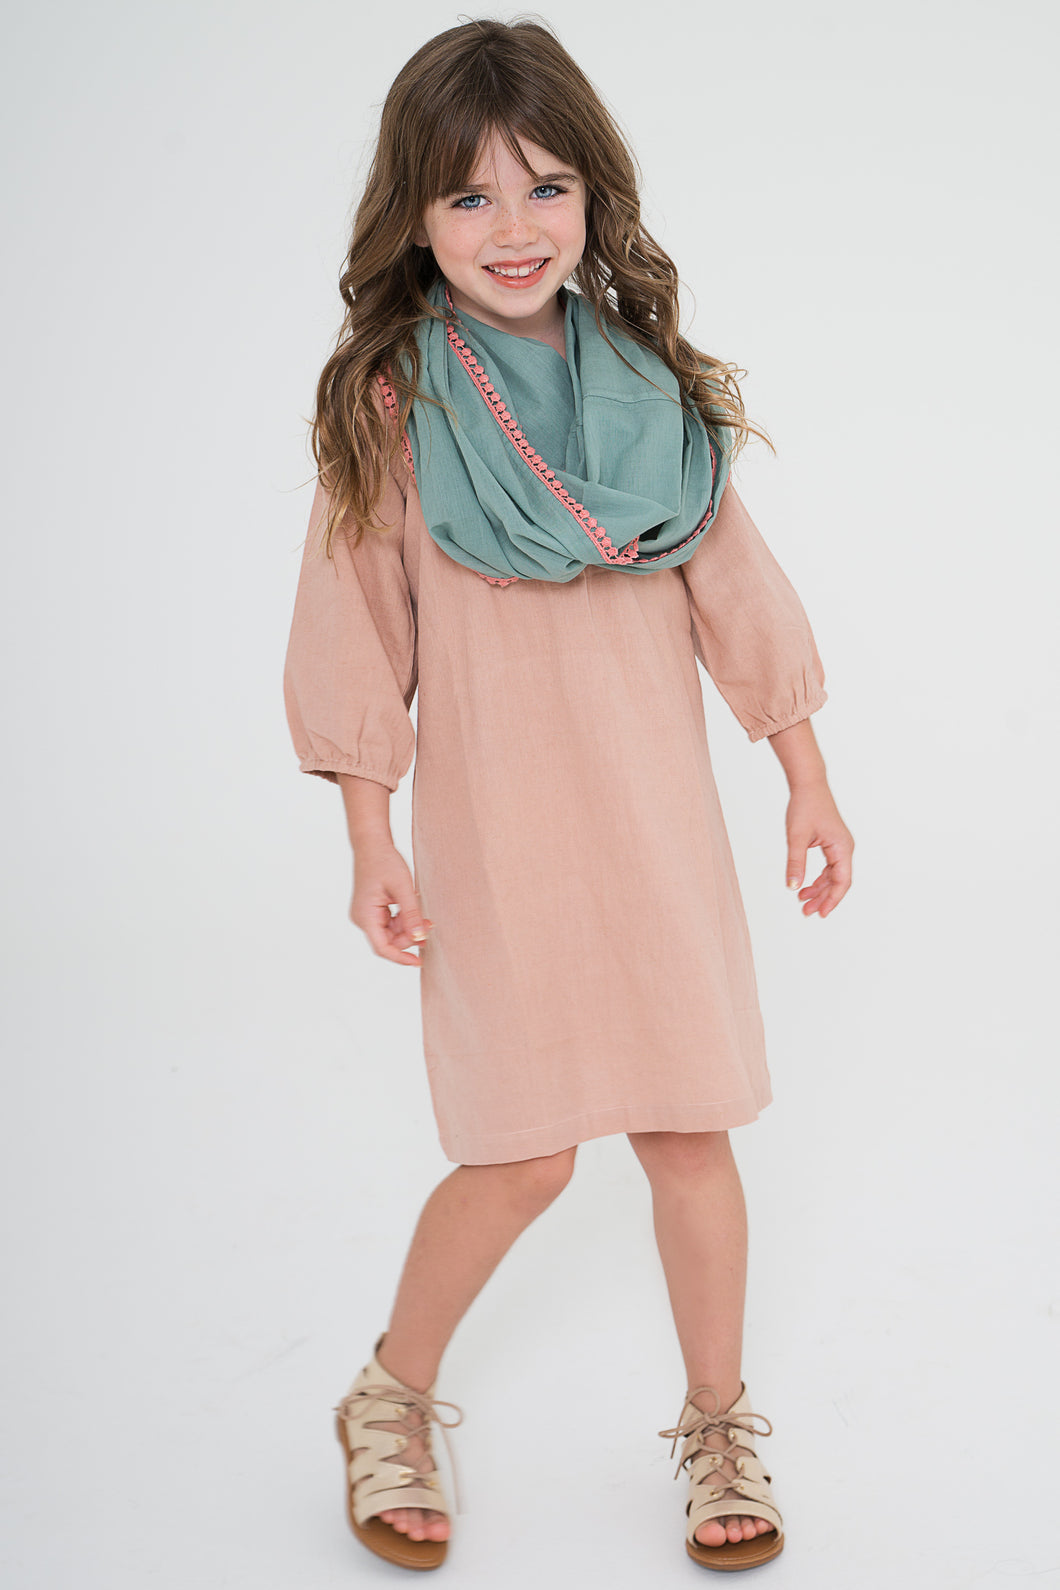 Blush Dress With Teal Infinity Scarf 2-pc. Set - Kids Wholesale Boutique Clothing, Dress - Girls Dresses, Yo Baby Wholesale - Yo Baby